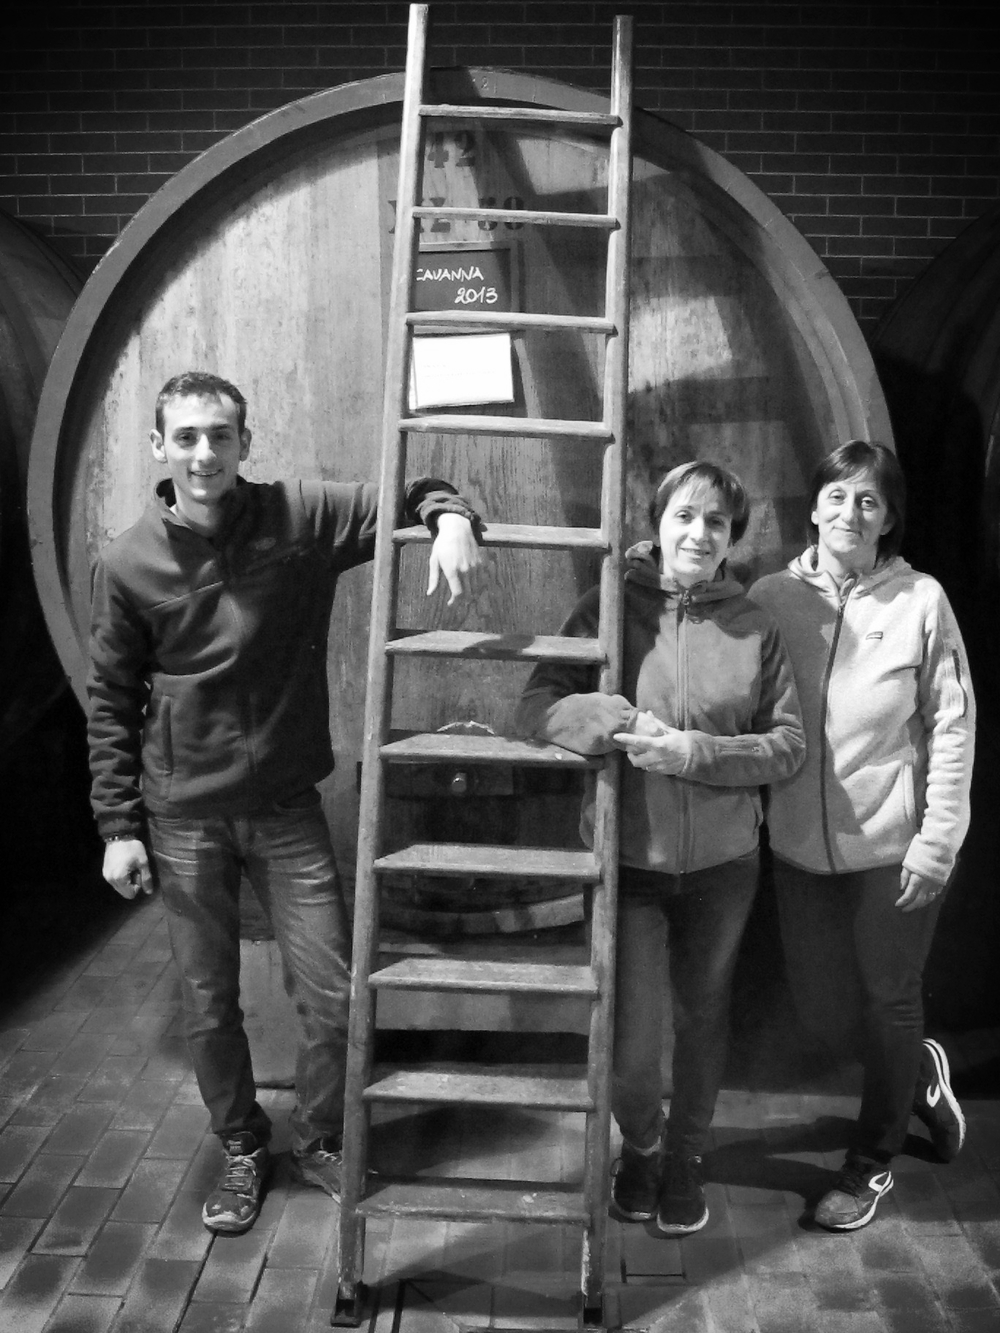 Name of winemaker in photo